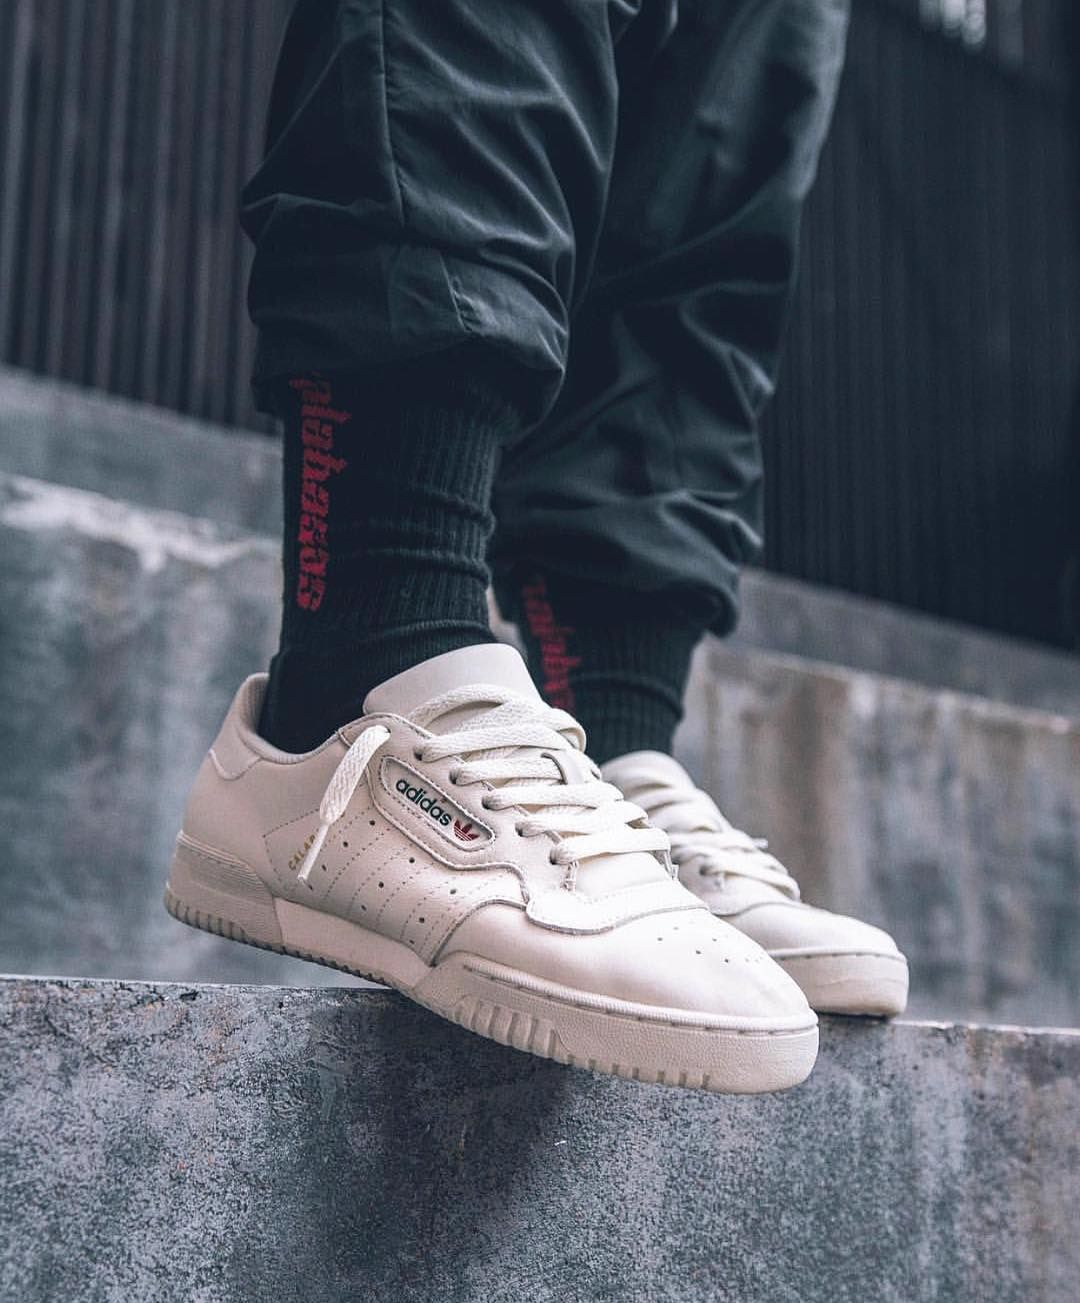 adidas Yeezy Powerphase  Calabasas by  abitgabriel Use  SADP and   SneakersAddict for a feature    yeezy  powerphase 70d731468